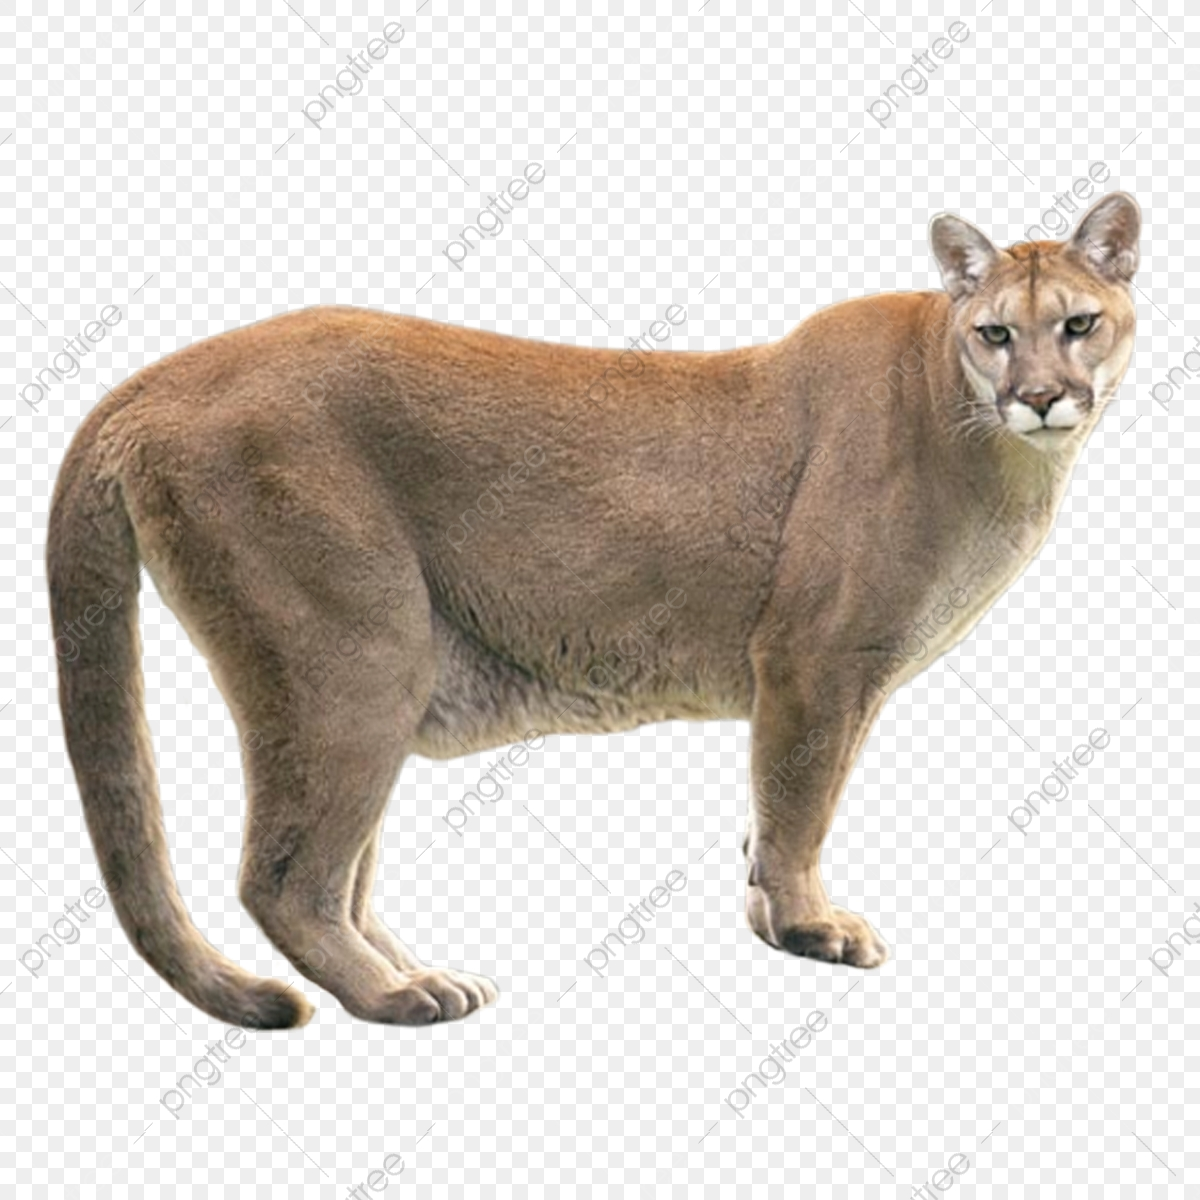 Wildlife Cougar Png Product Kind Wild Animals Cougar Png Transparent Clipart Image And Psd File For Free Download